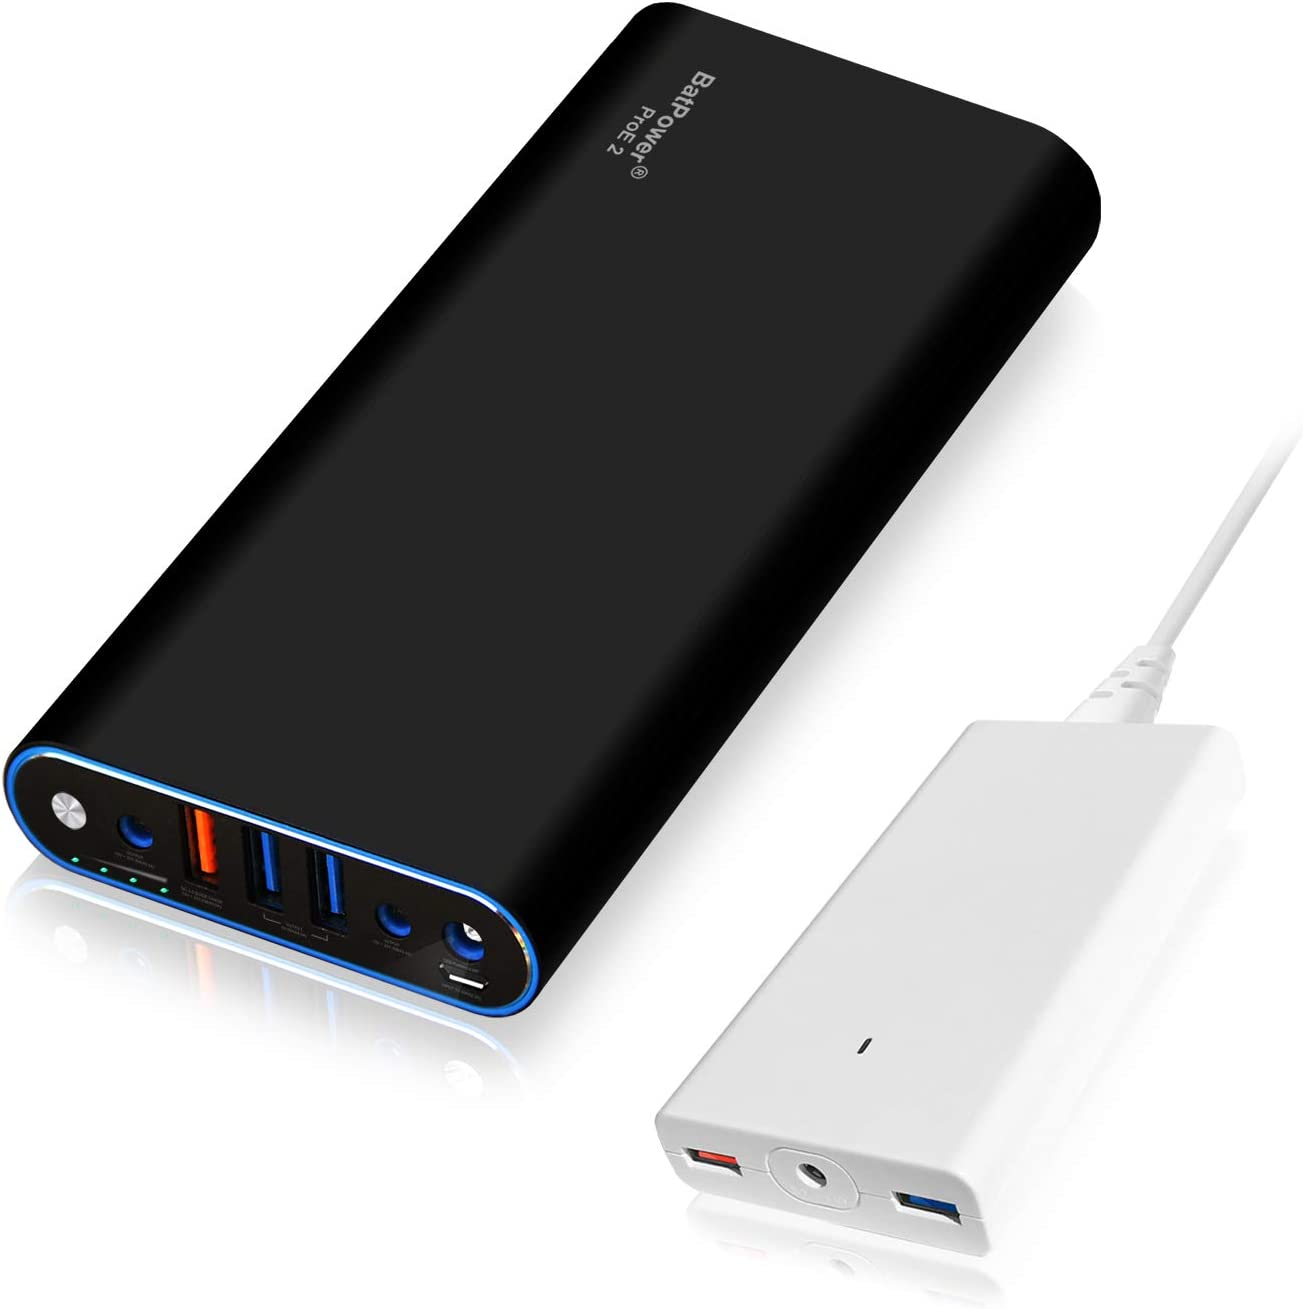 BatPower ProE 2 EX10B Portable Charger External Battery Power Bank for Apple MacBook Pro MacBook Air Mac Retina 2006-2015 Laptop, QC 3.0 USB Ports Fast Charging for Tablet and Smartphone -148Wh